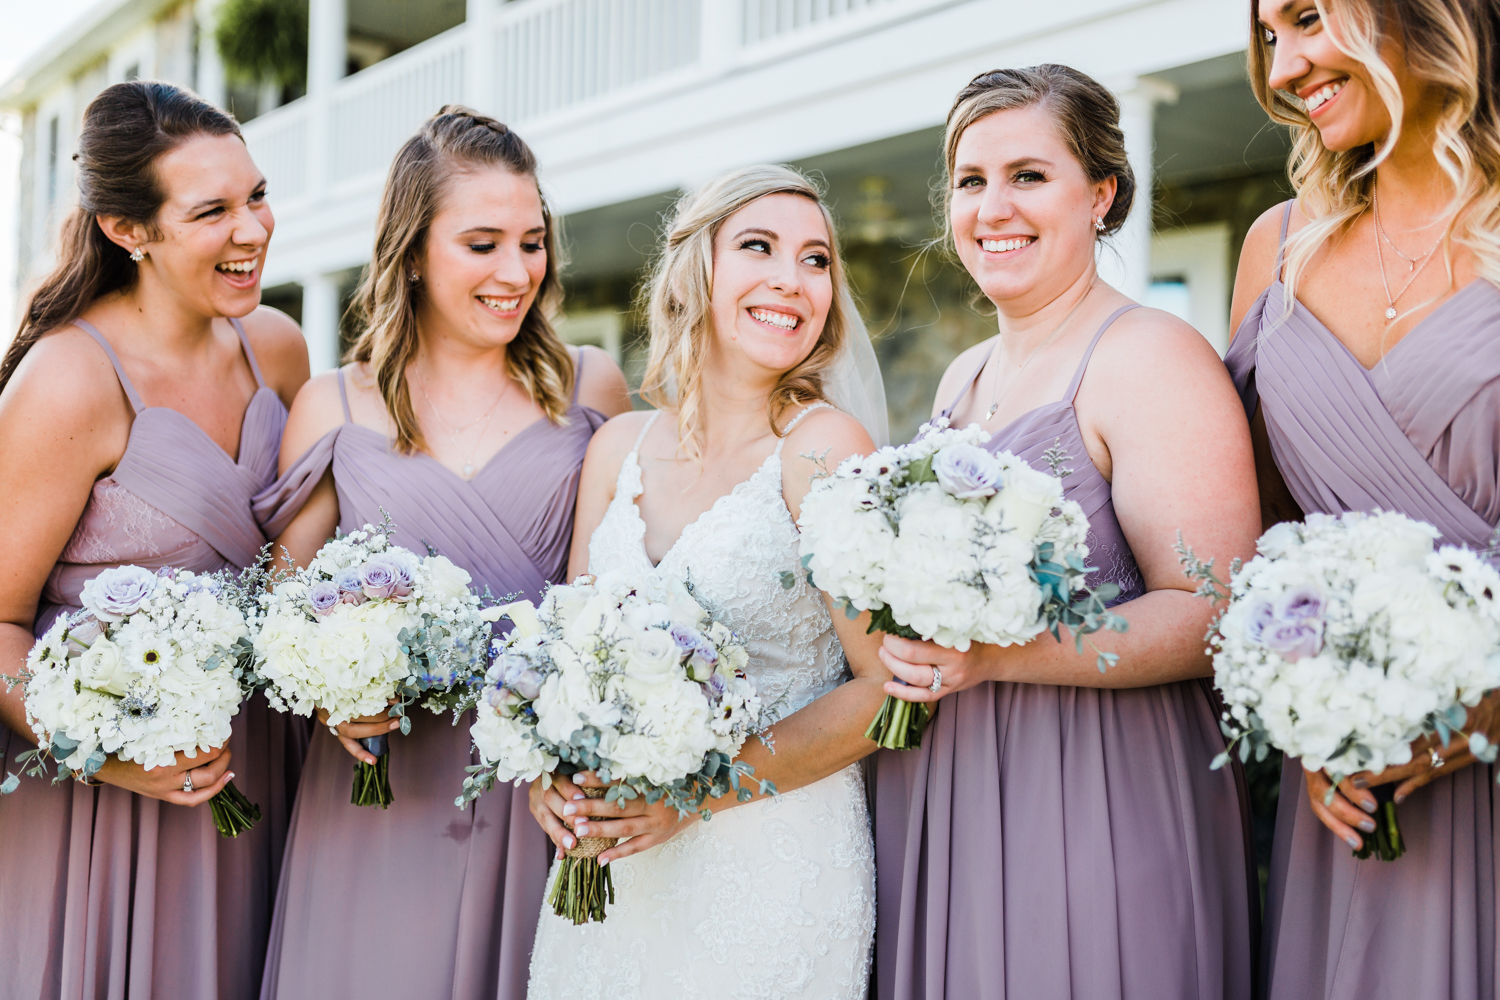 Bride with laughing with bridesmaids - MD best photographer in Maryland